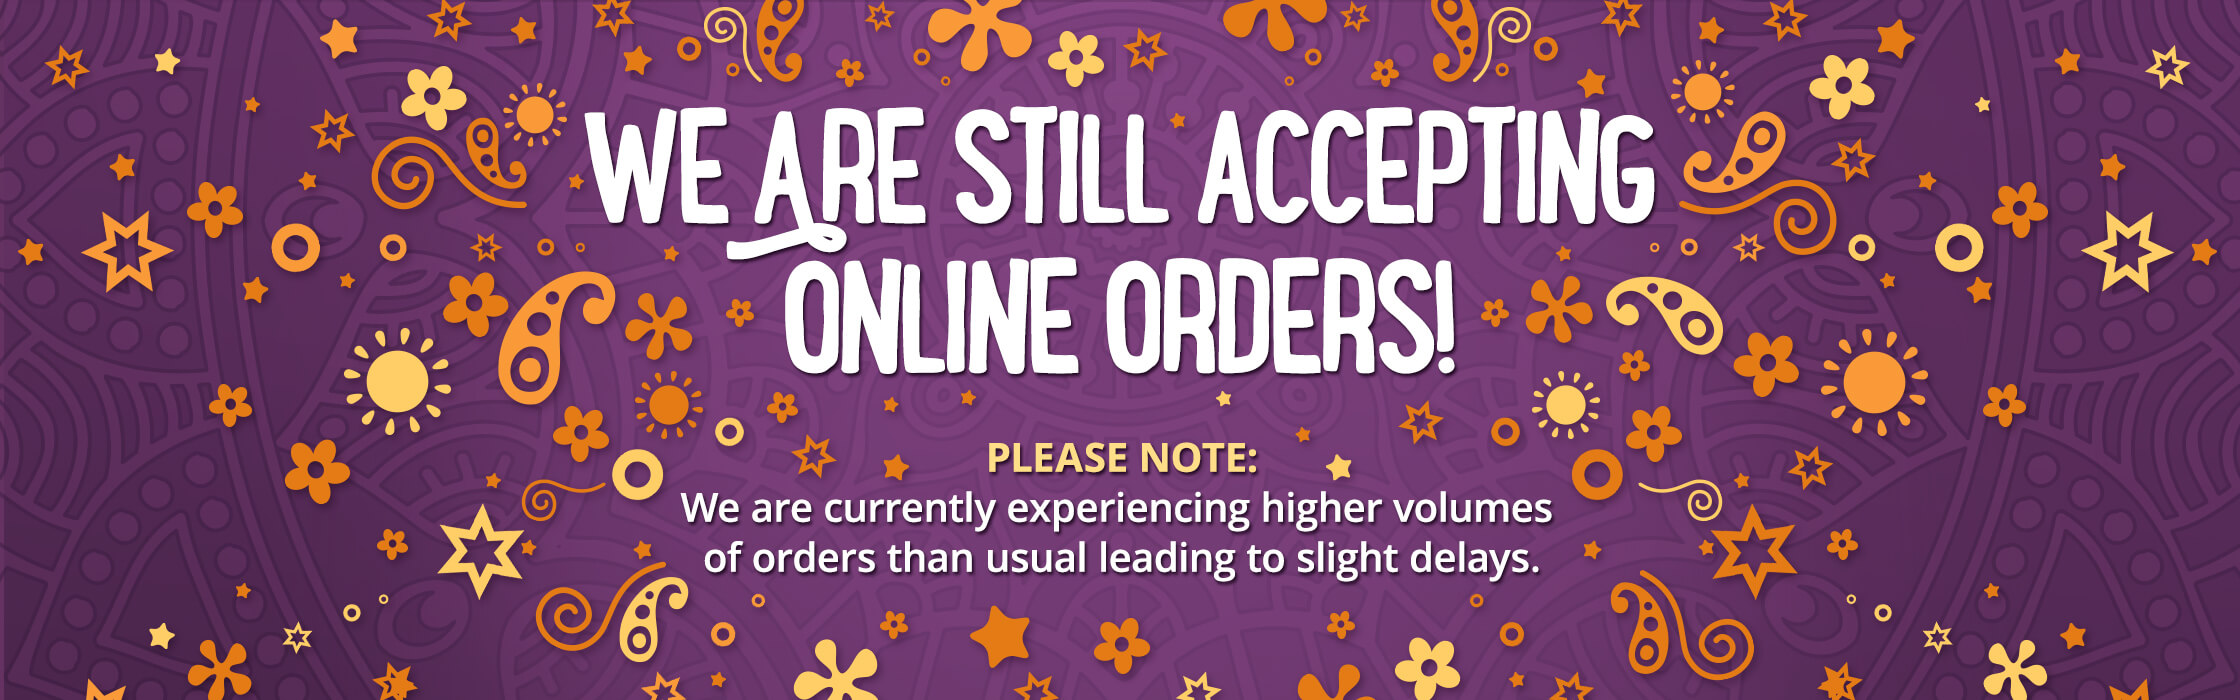 We're still accepting online orders